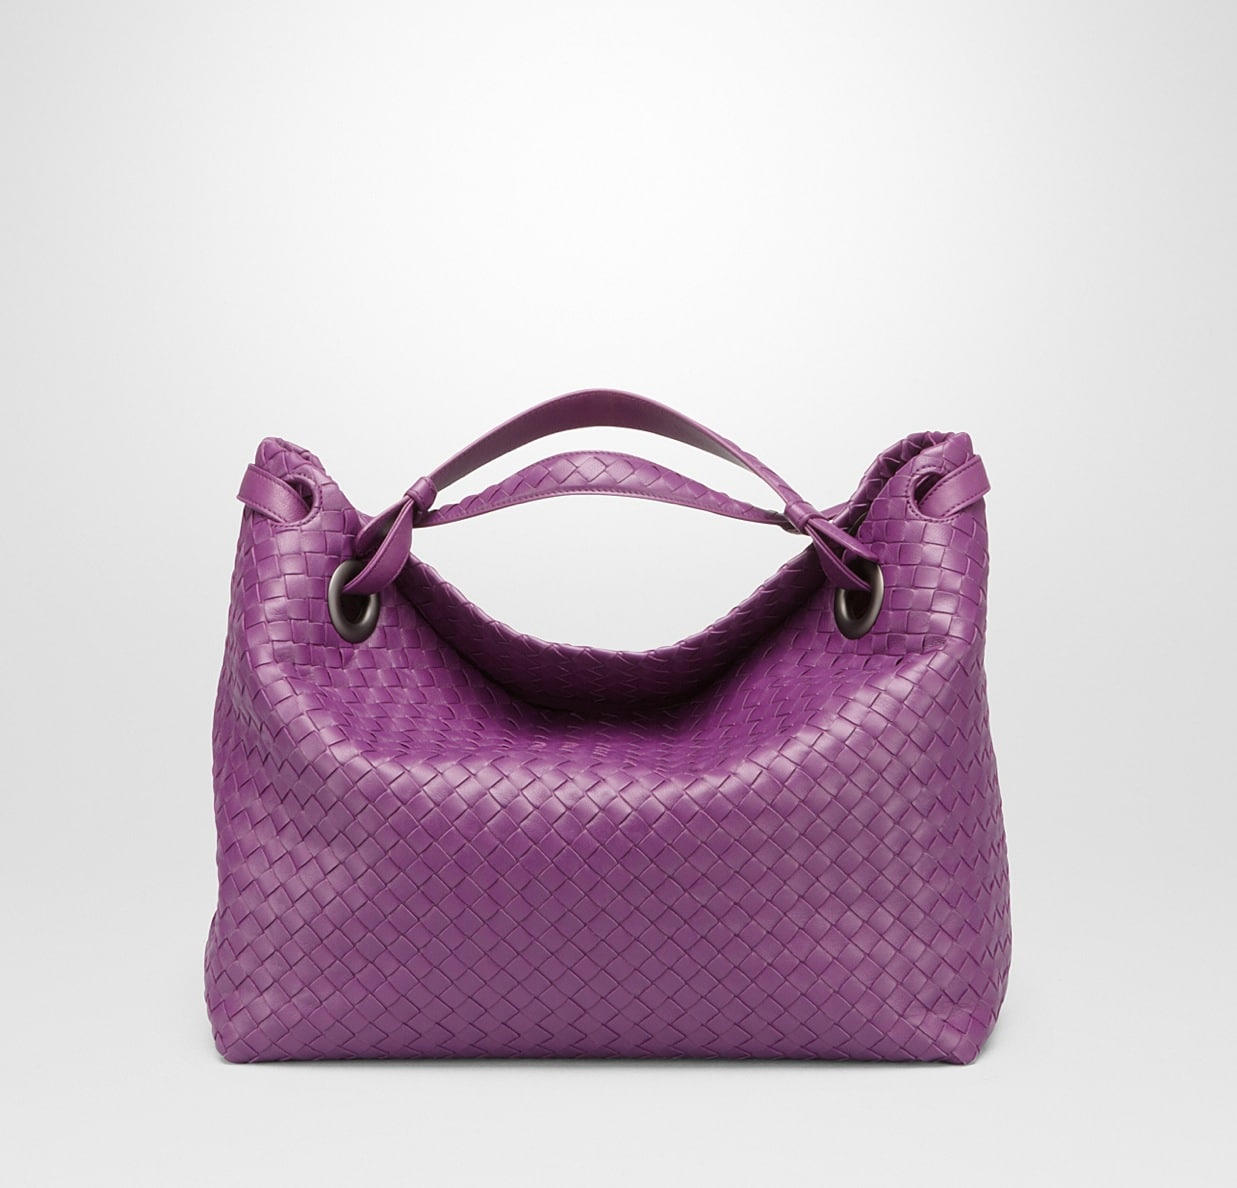 396f4470a8 Bottega Veneta Cruise 2015 Bag Collection and new Glimmer Hobo ...